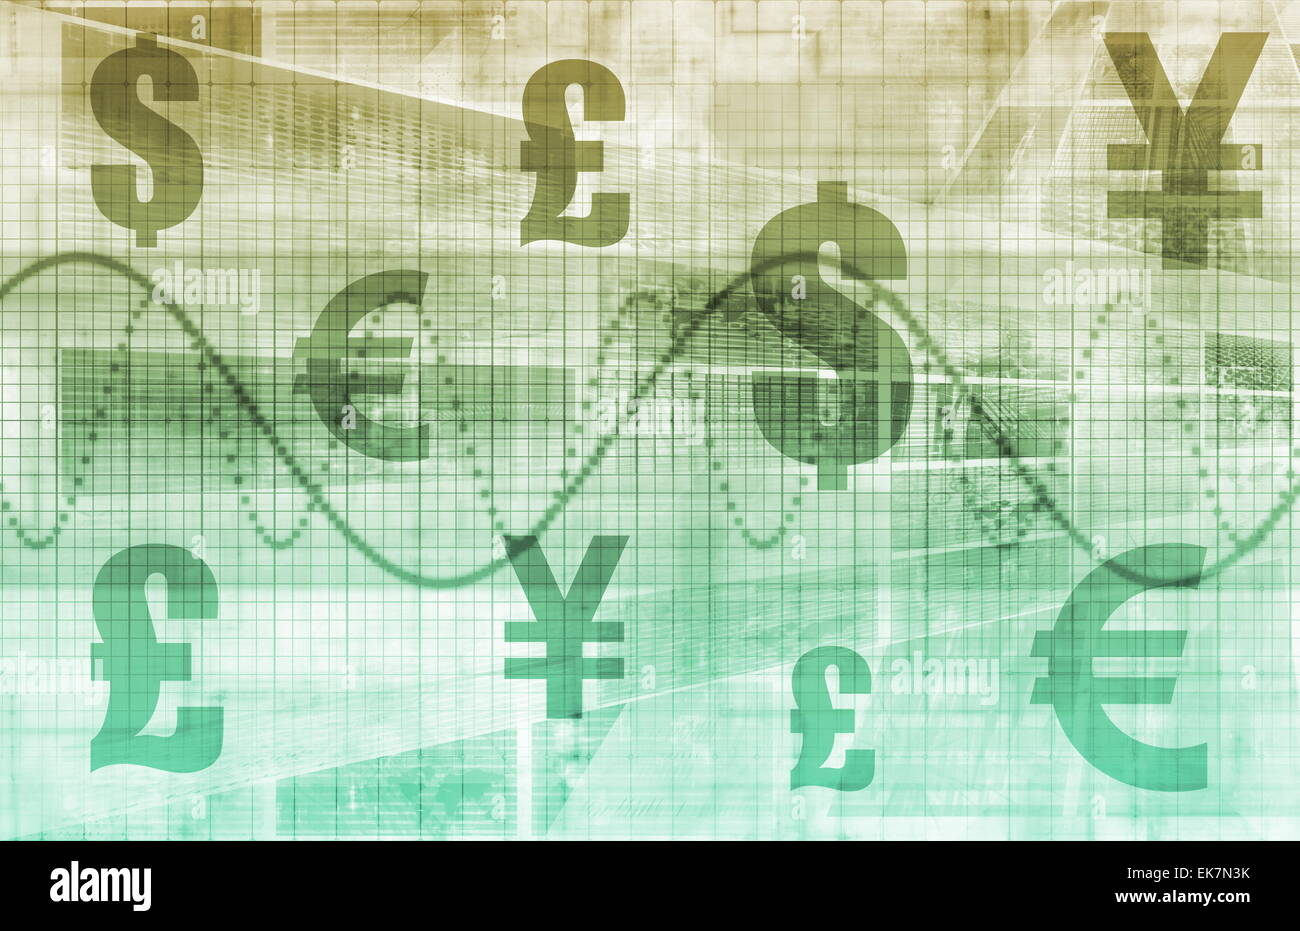 Currencies Collage - Stock Image